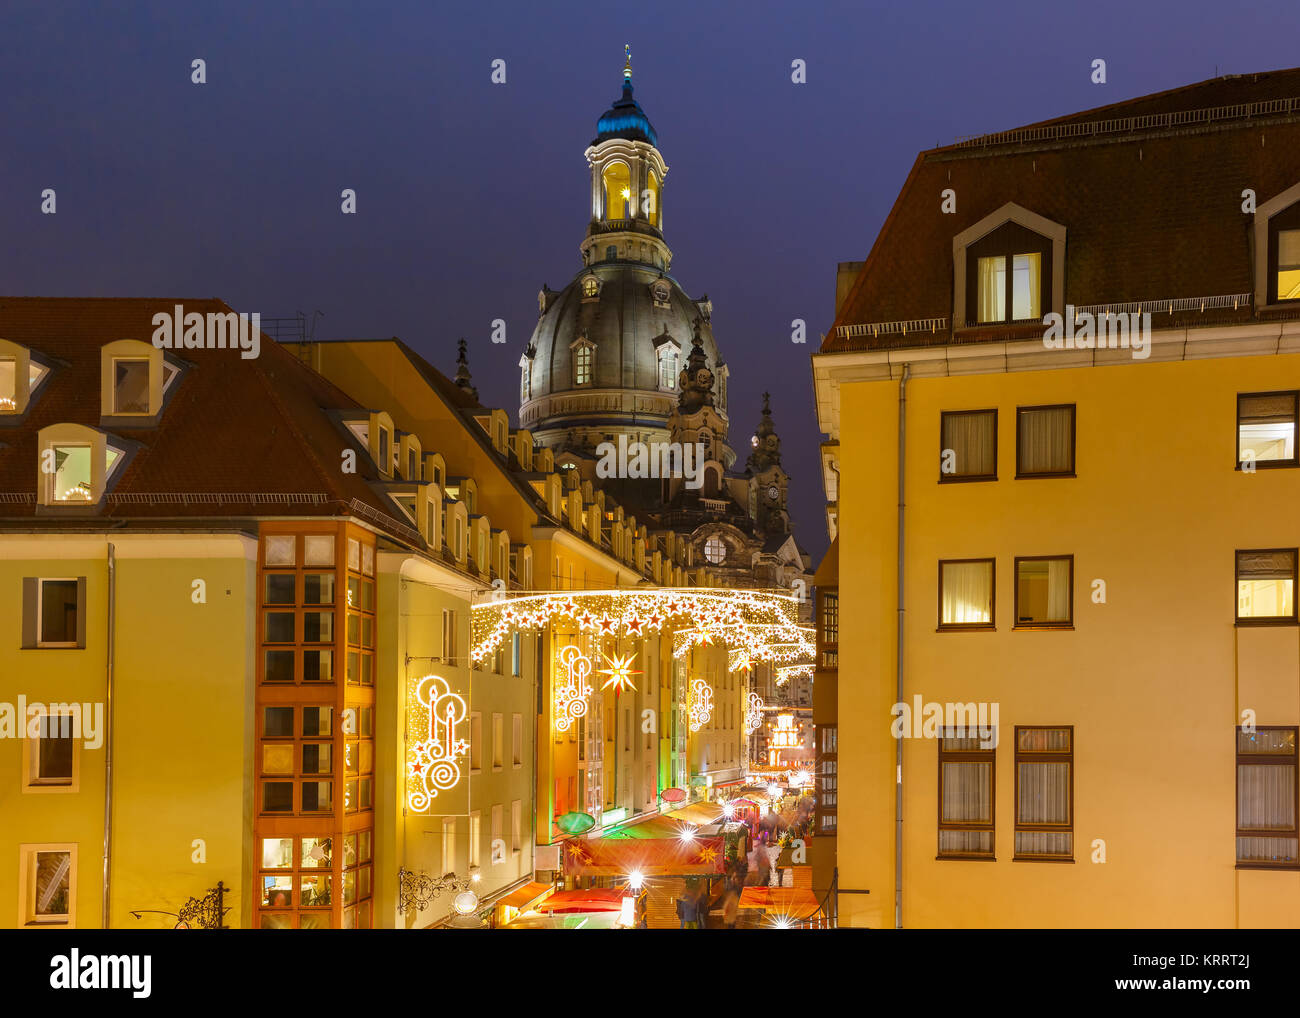 Christmas street at night in Dresden, Germany - Stock Image